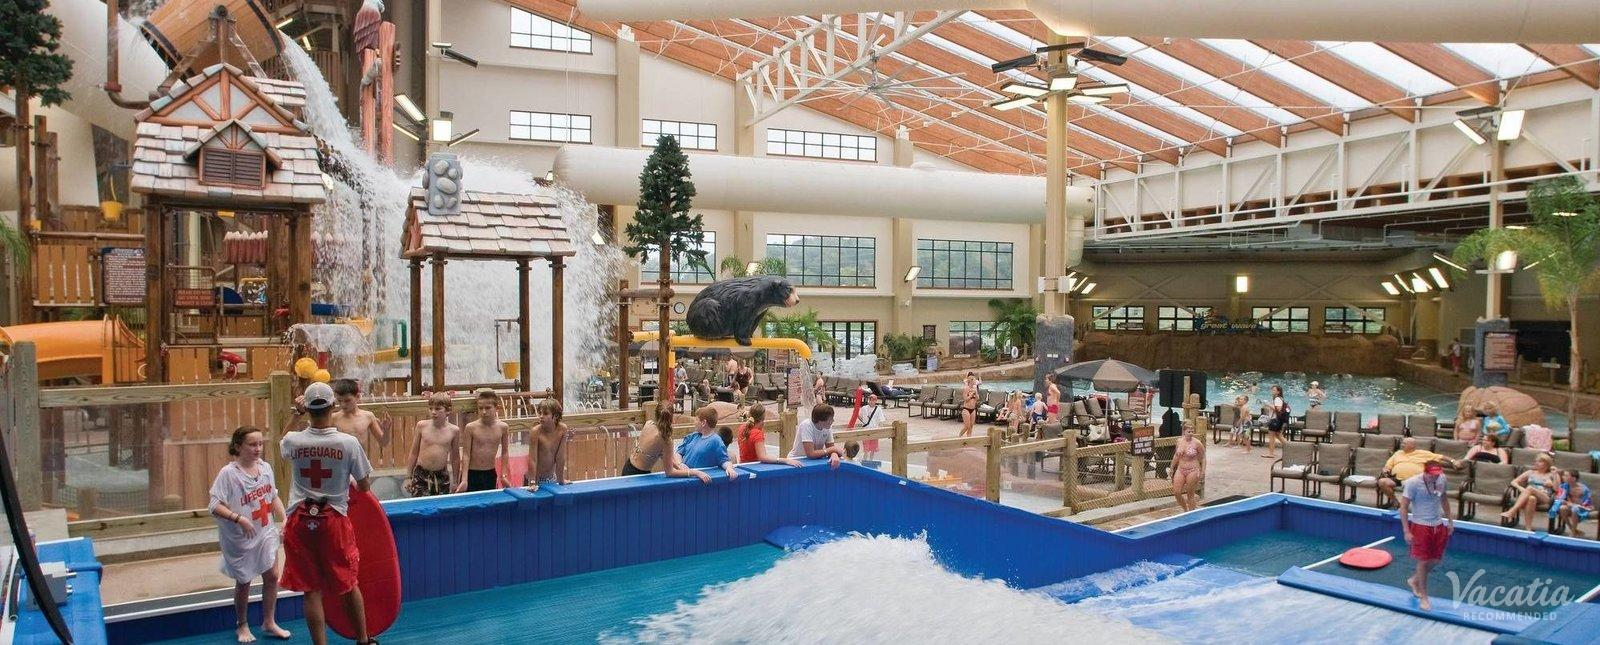 Great Smokies Lodge Wyndham Water Park